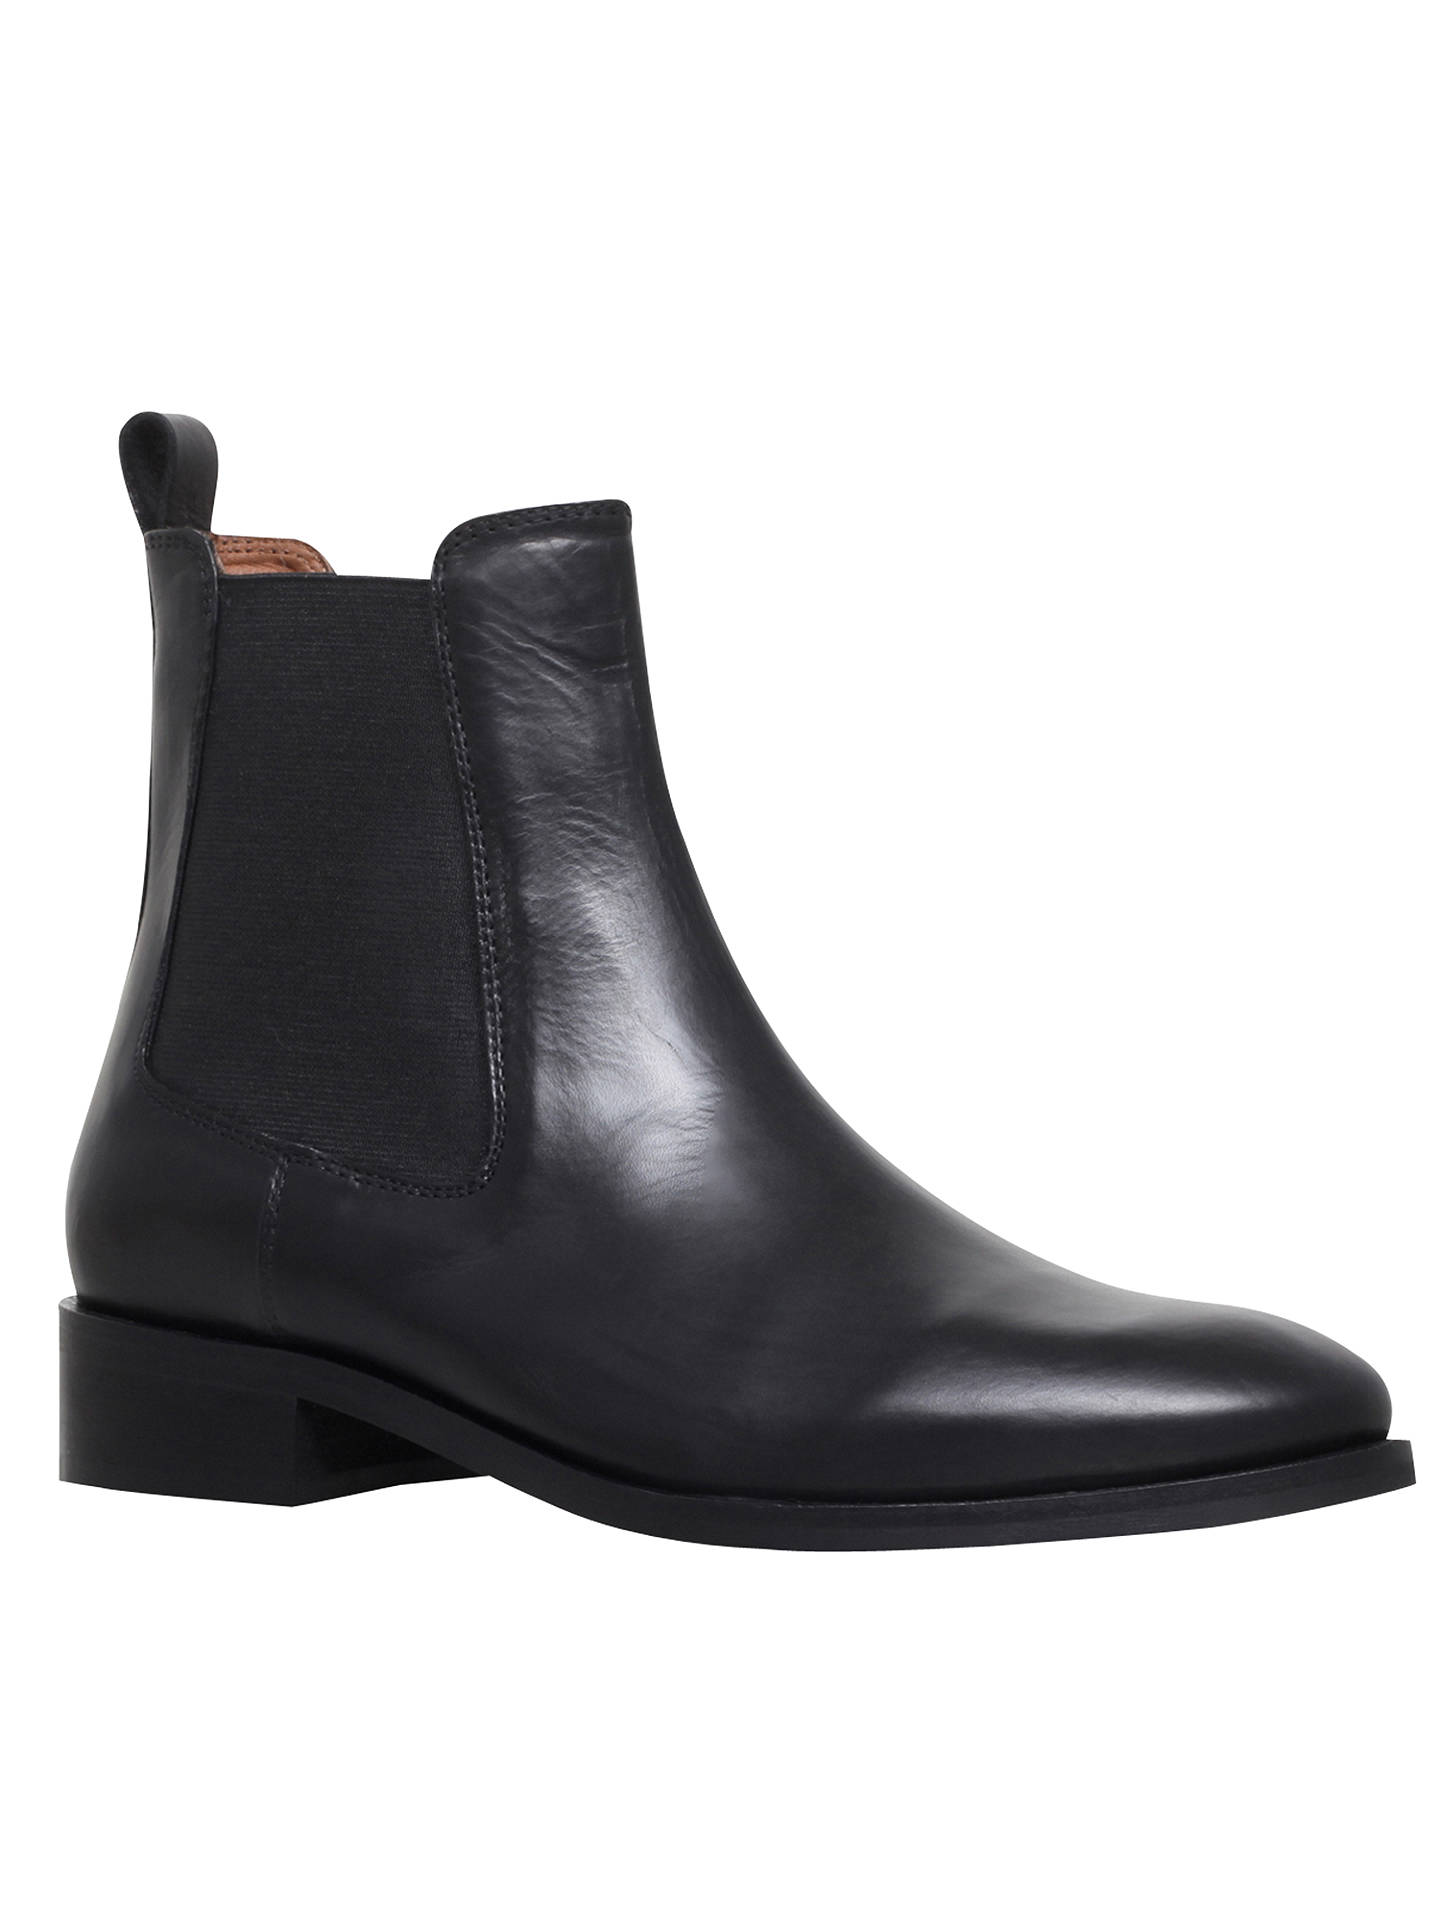 BuyKurt Geiger London Dalby Ankle Chelsea Boots, Black, 3 Online at johnlewis.com